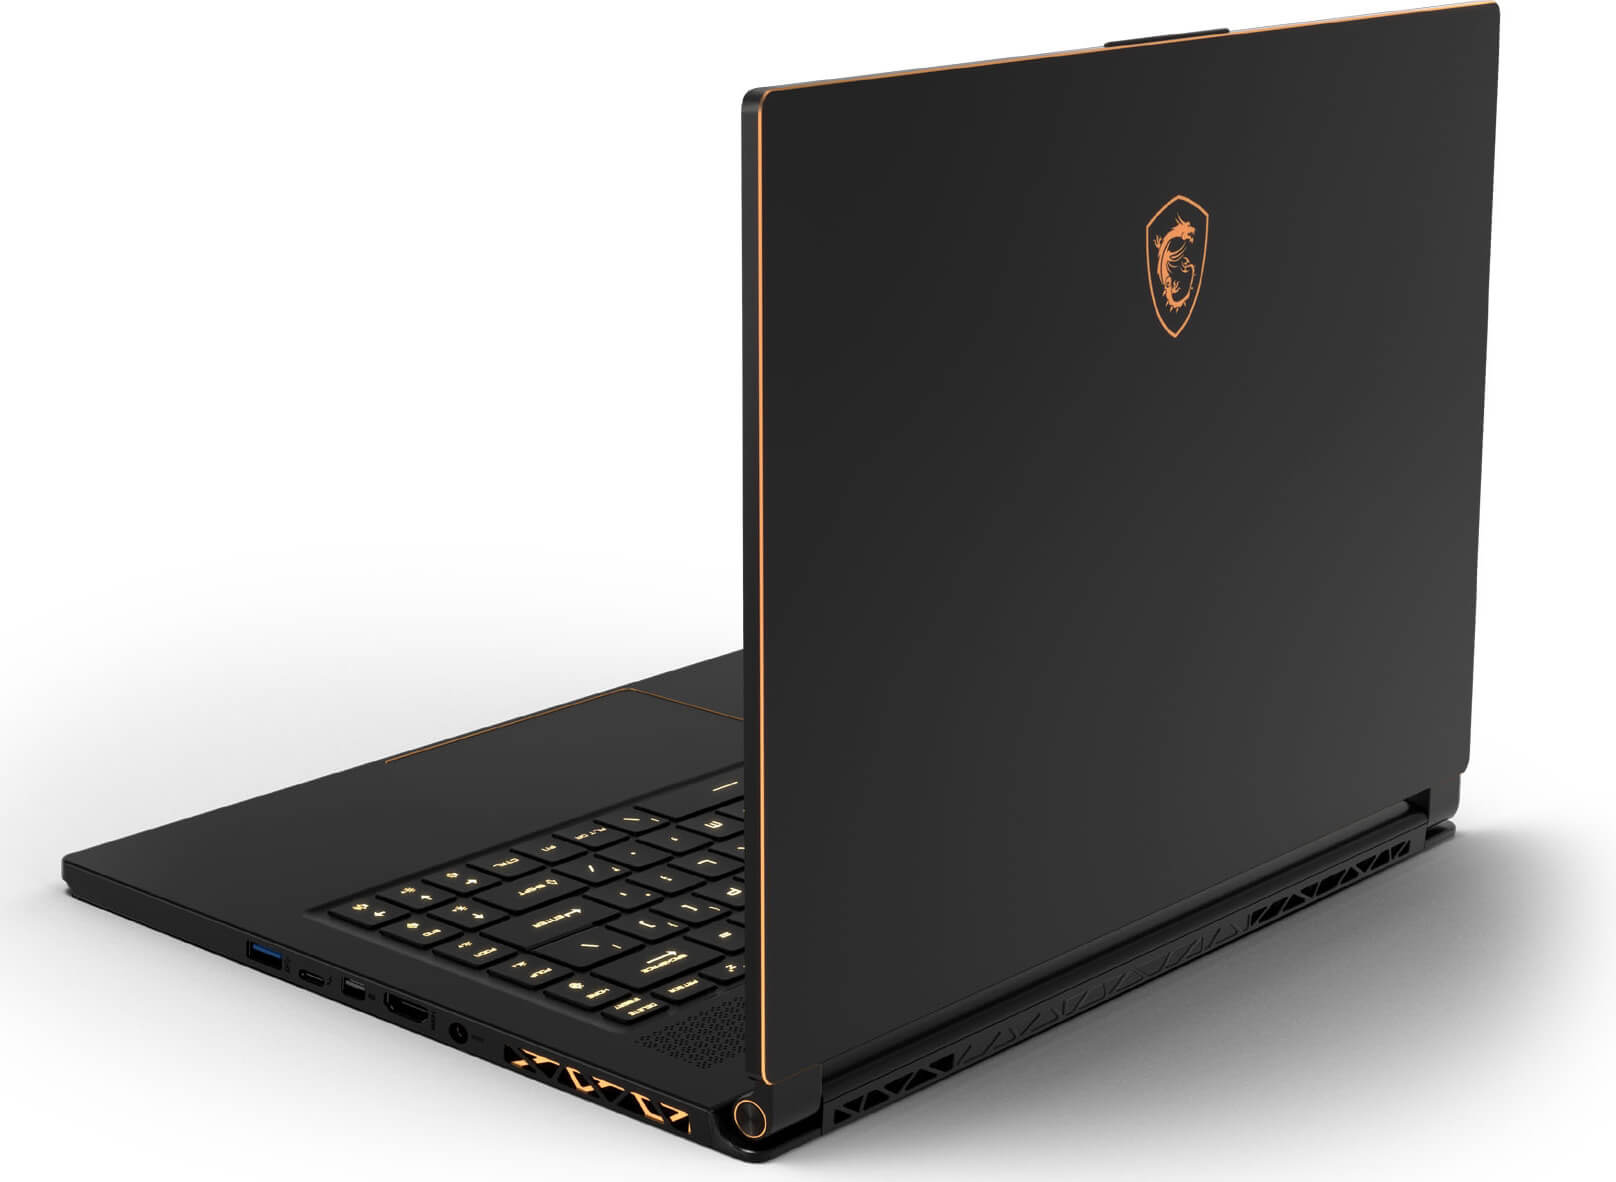 MSI GS65 8SE Stealth - RTX2060 - Intel Gen 8